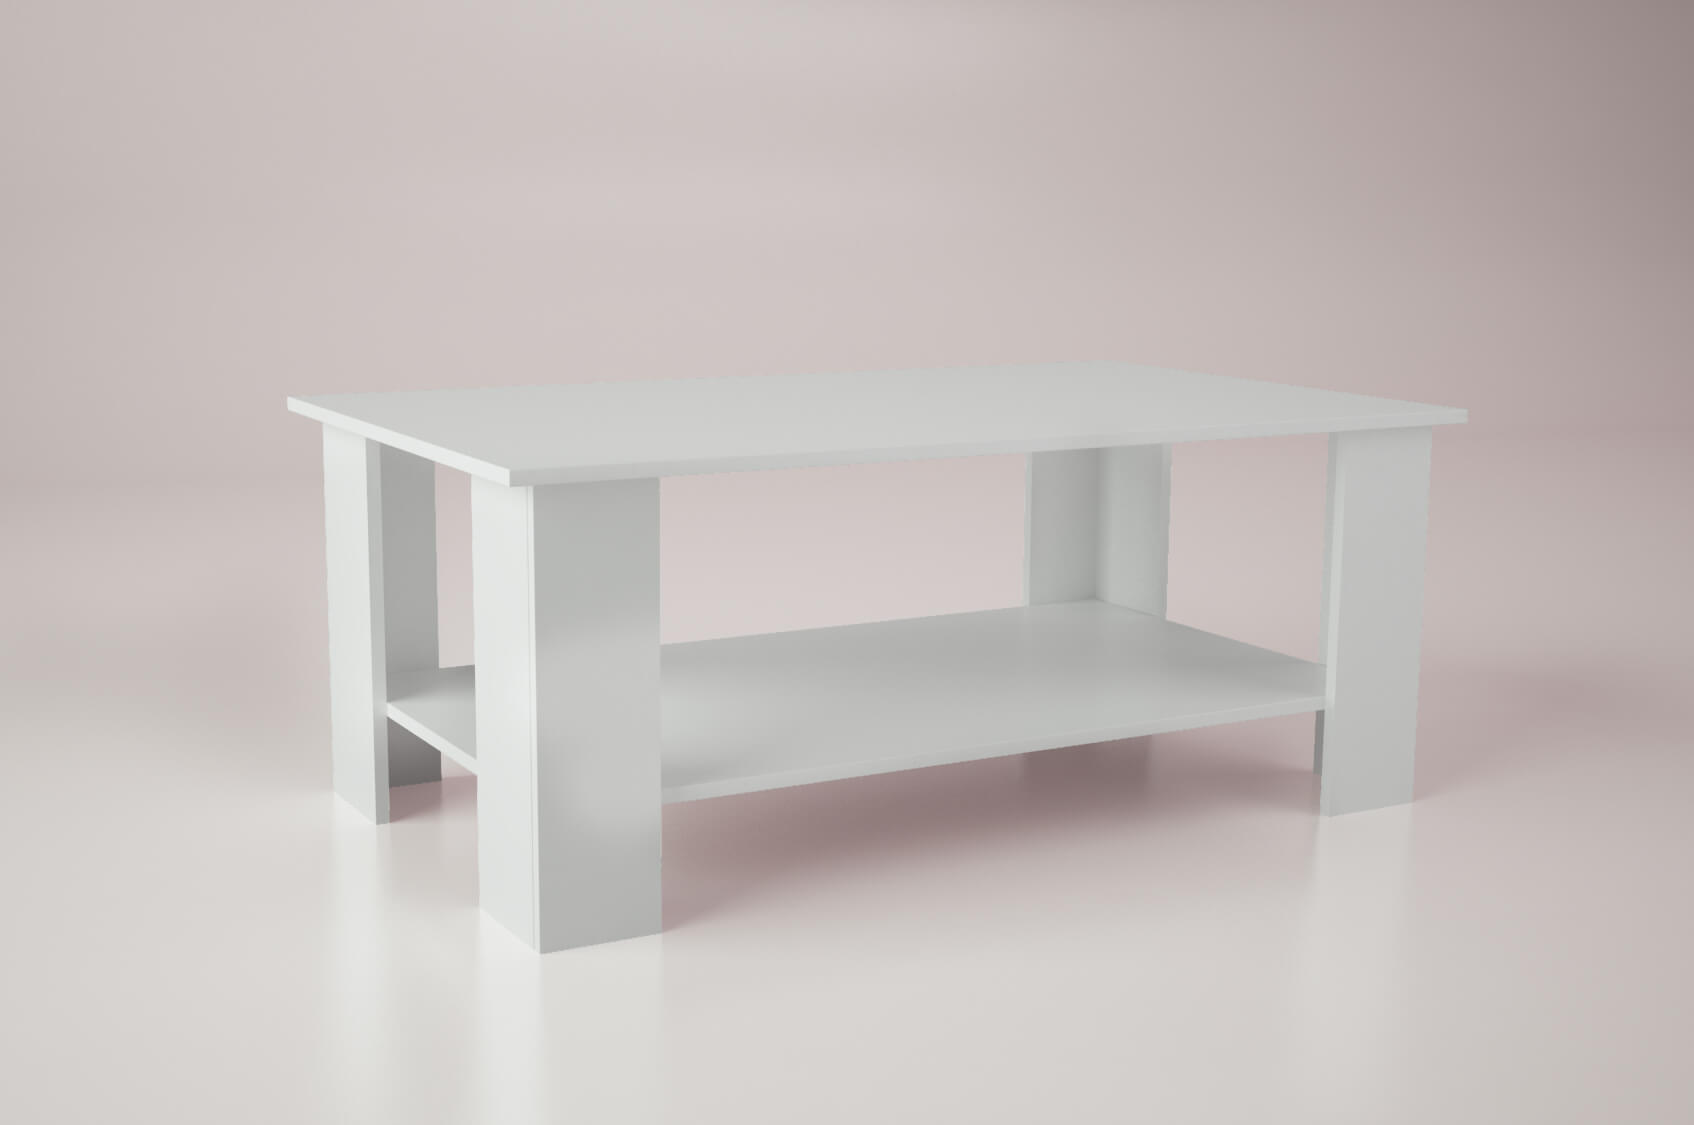 Joi Large Coffee Table In White Gloss Color Idea Workmate